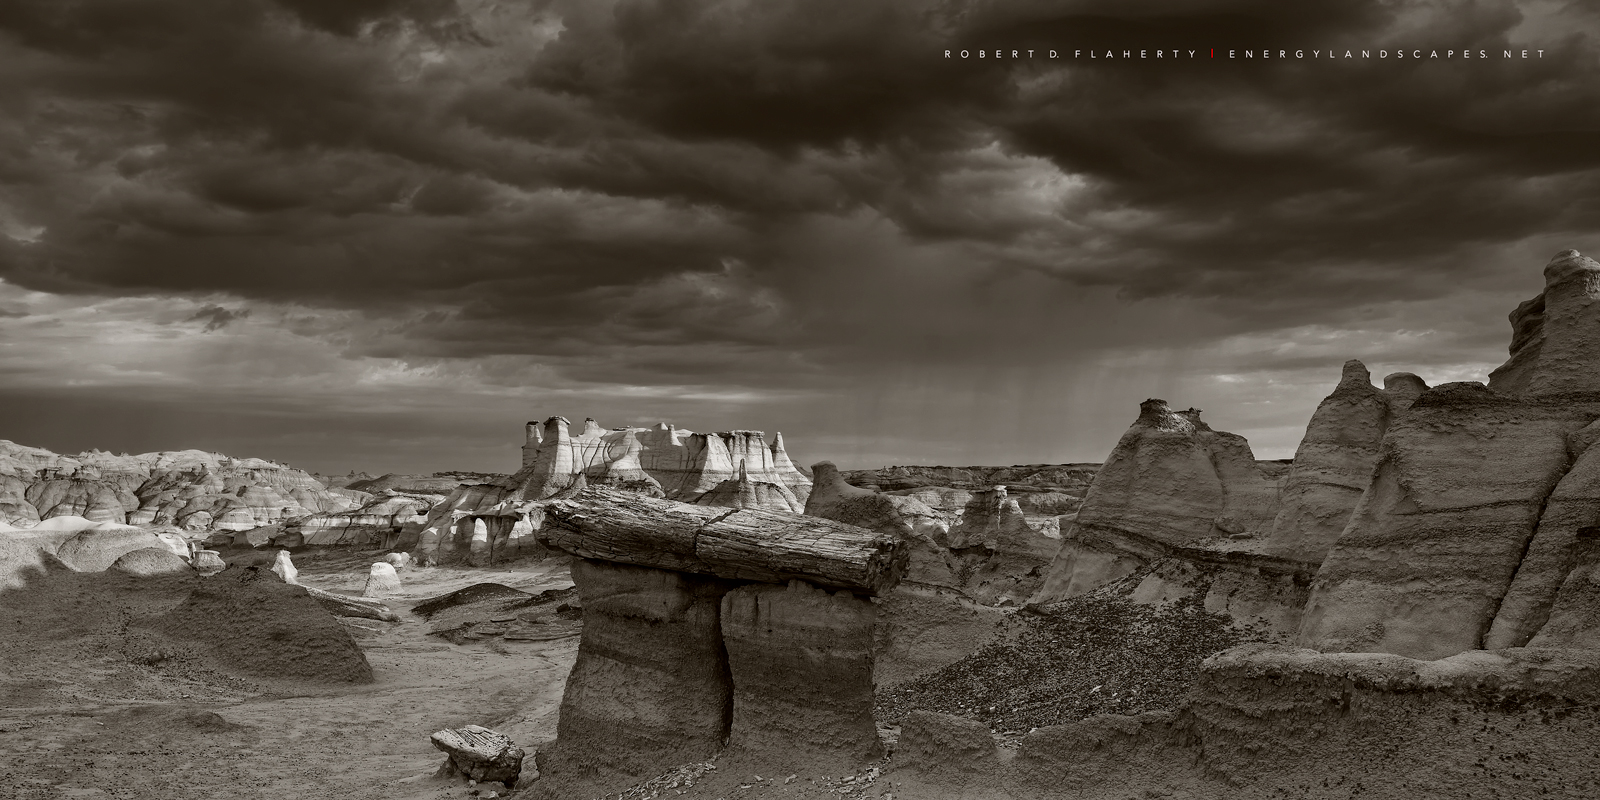 New Mexico, New Mexico fine art landscape photography, Bisti Wilderness, Navajo, desolation, monsoon, rain, Ship Rock, Northwestern New Mexico, Ruidoso, photo